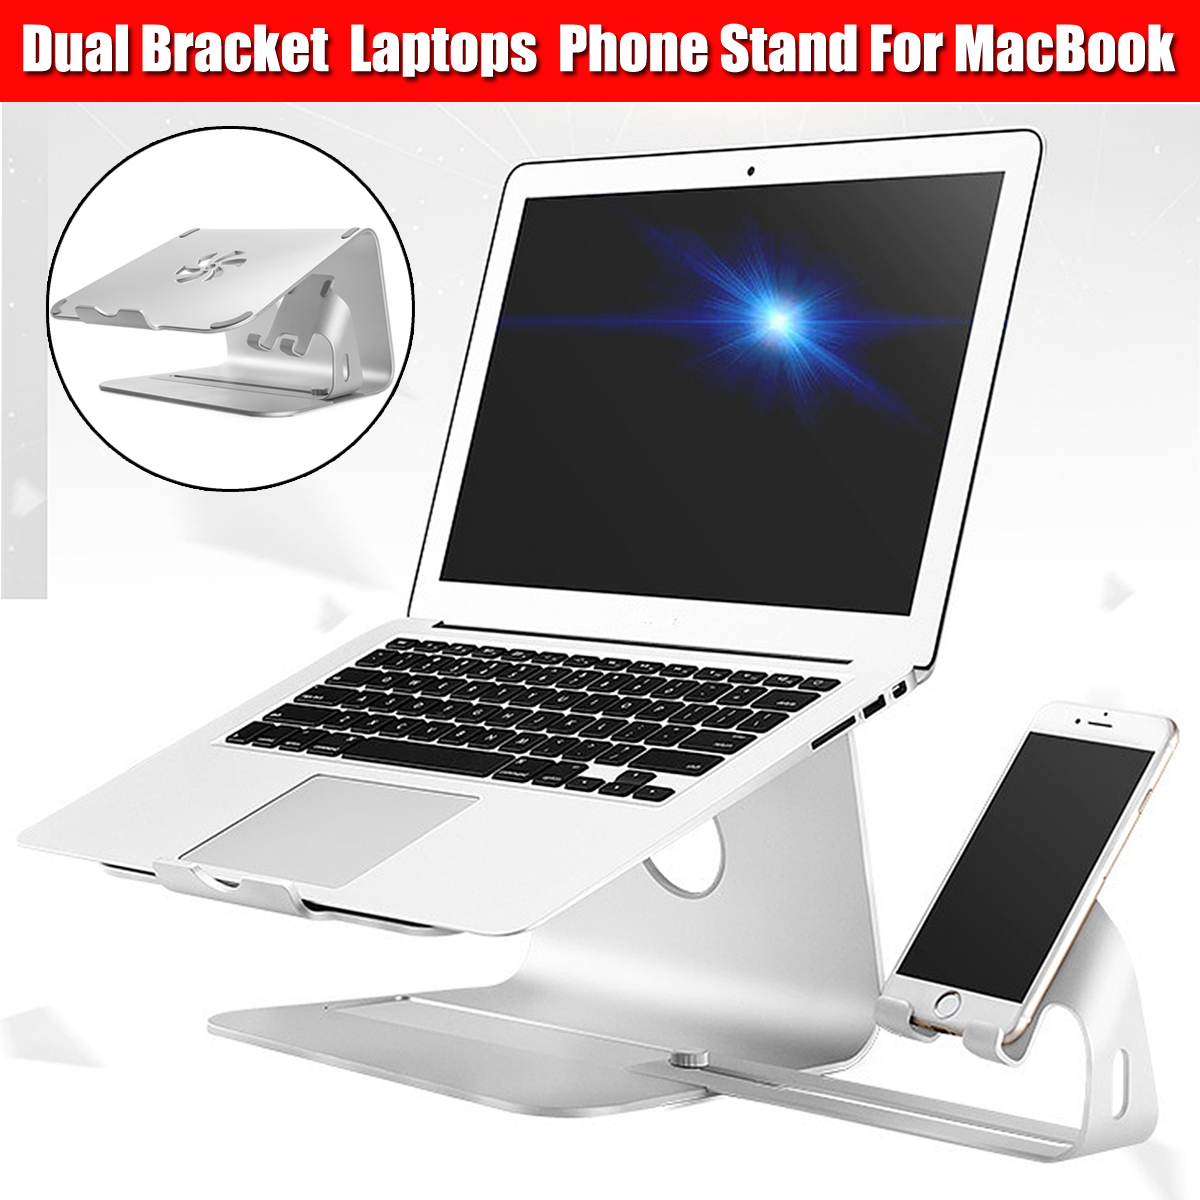 Double Bracket Aluminum Alloy Notebook Laptops Stand Desktop Holder for Laptop Notebook Mobile phone laptop stand increased base foldable rotation mobile phone holder portable heat dissipation bracket simple desktop computer tray